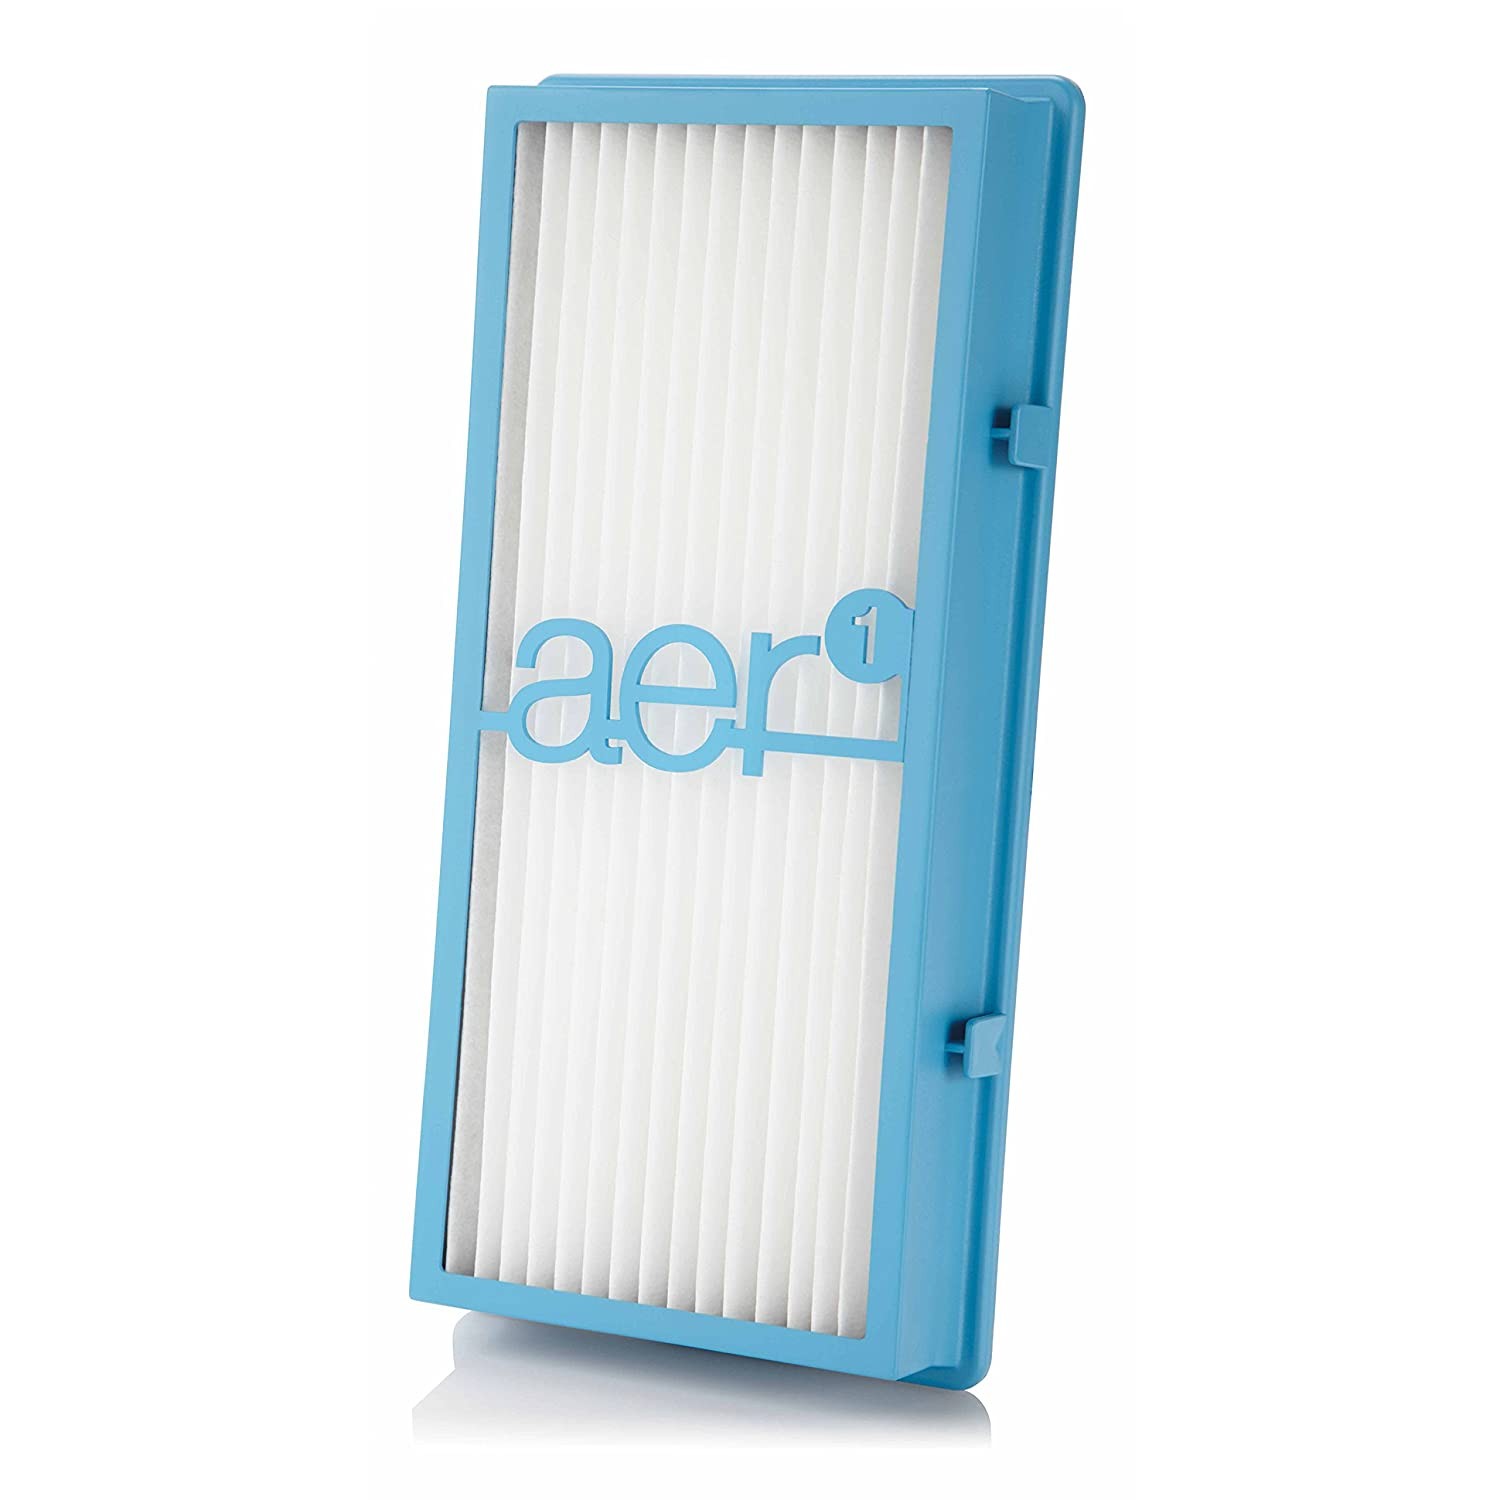 Amazon.com: Holmes Air Filter | AER1 Total HEPA Type Filter, HAPF30AT: Home  & Kitchen